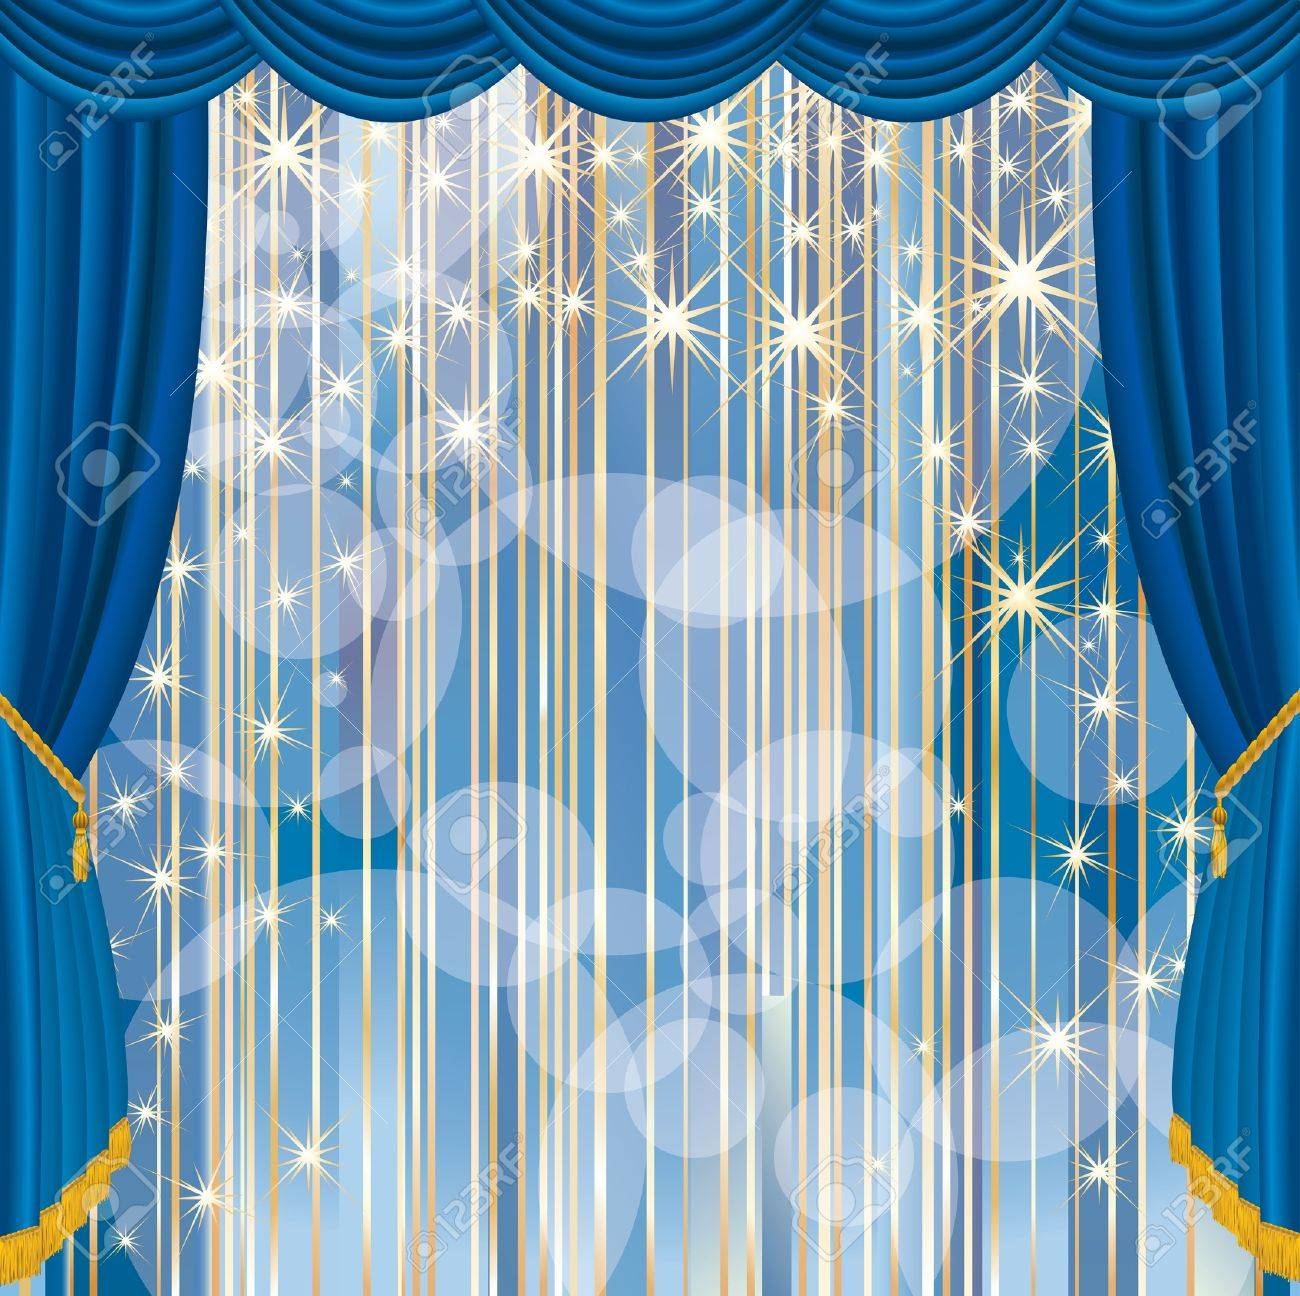 Blue stage curtains blue stage curtain vector free vector in - Theater Curtain Blue Stage With Stars And Strips Illustration